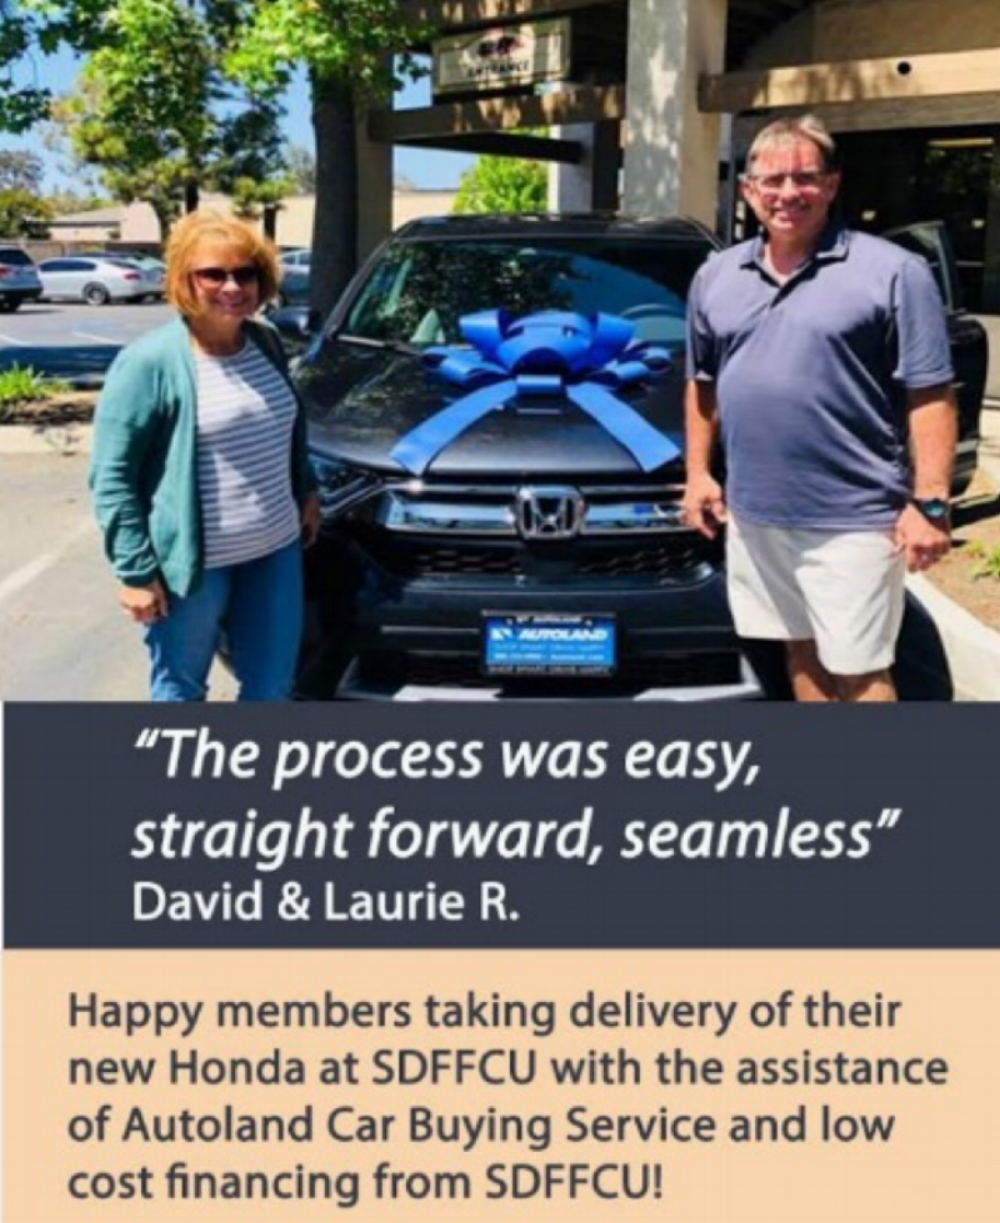 The car buying process was easy!